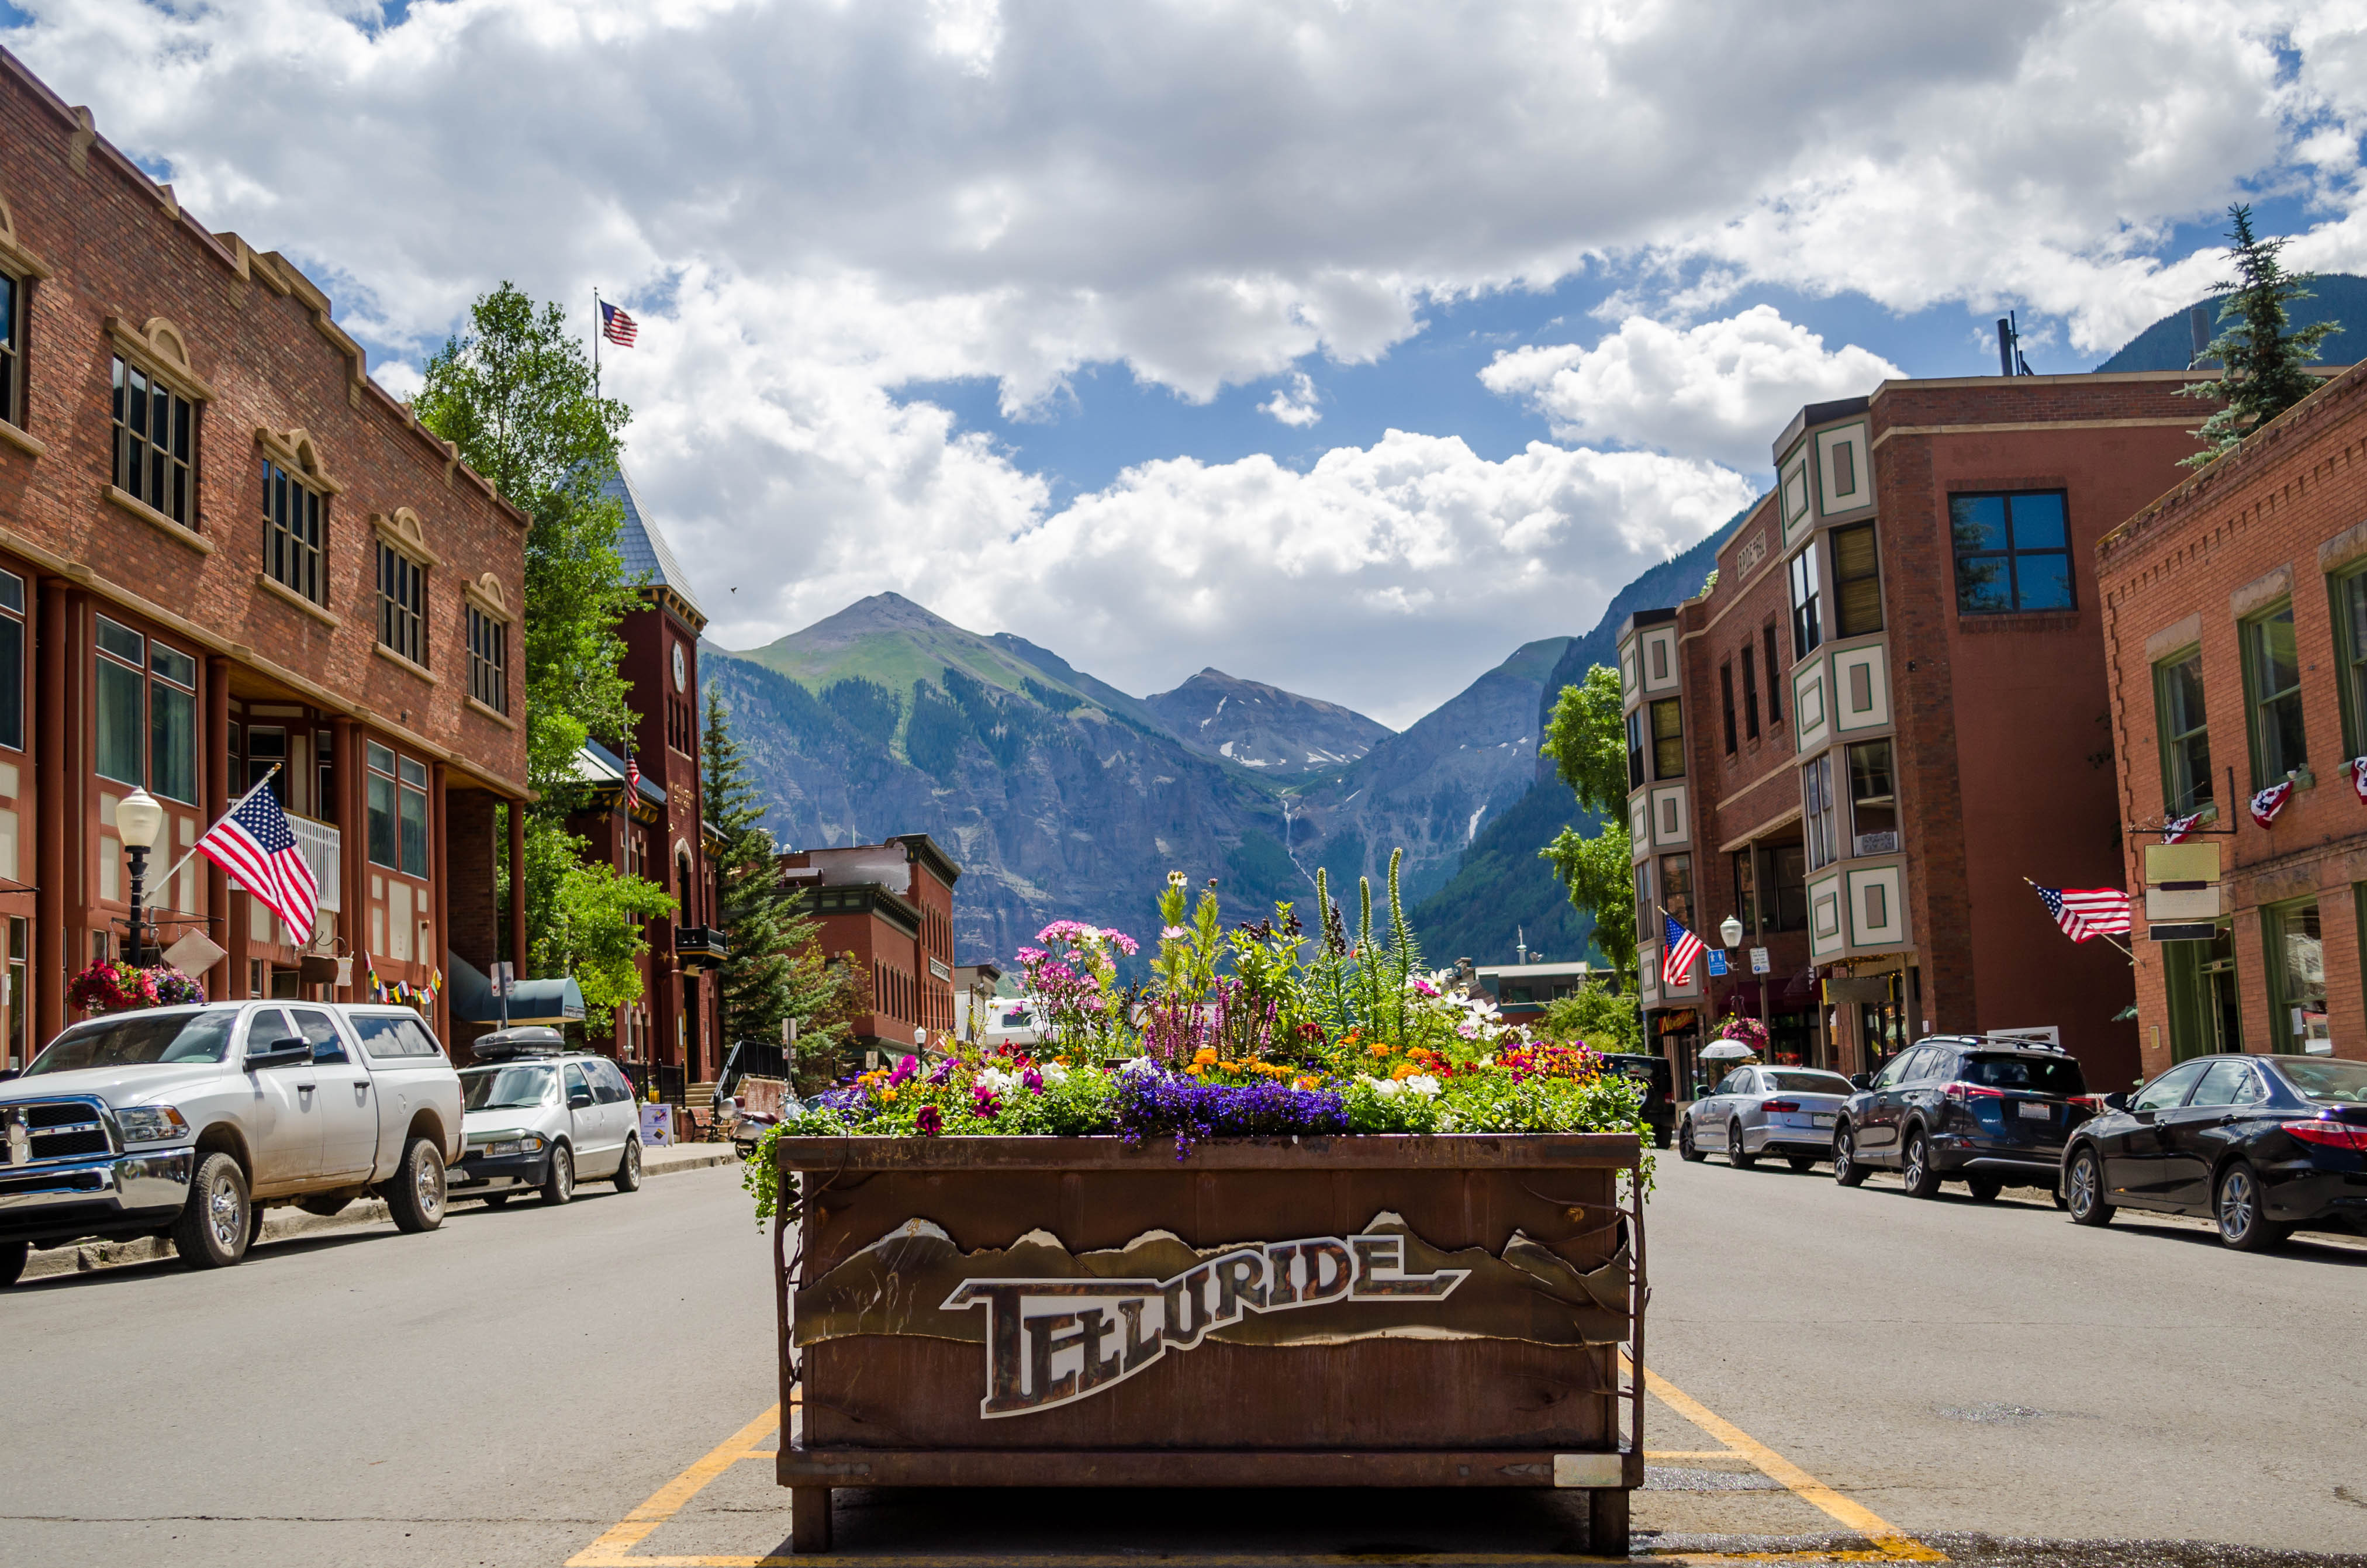 a flower box in downtown Telluride, Colorado